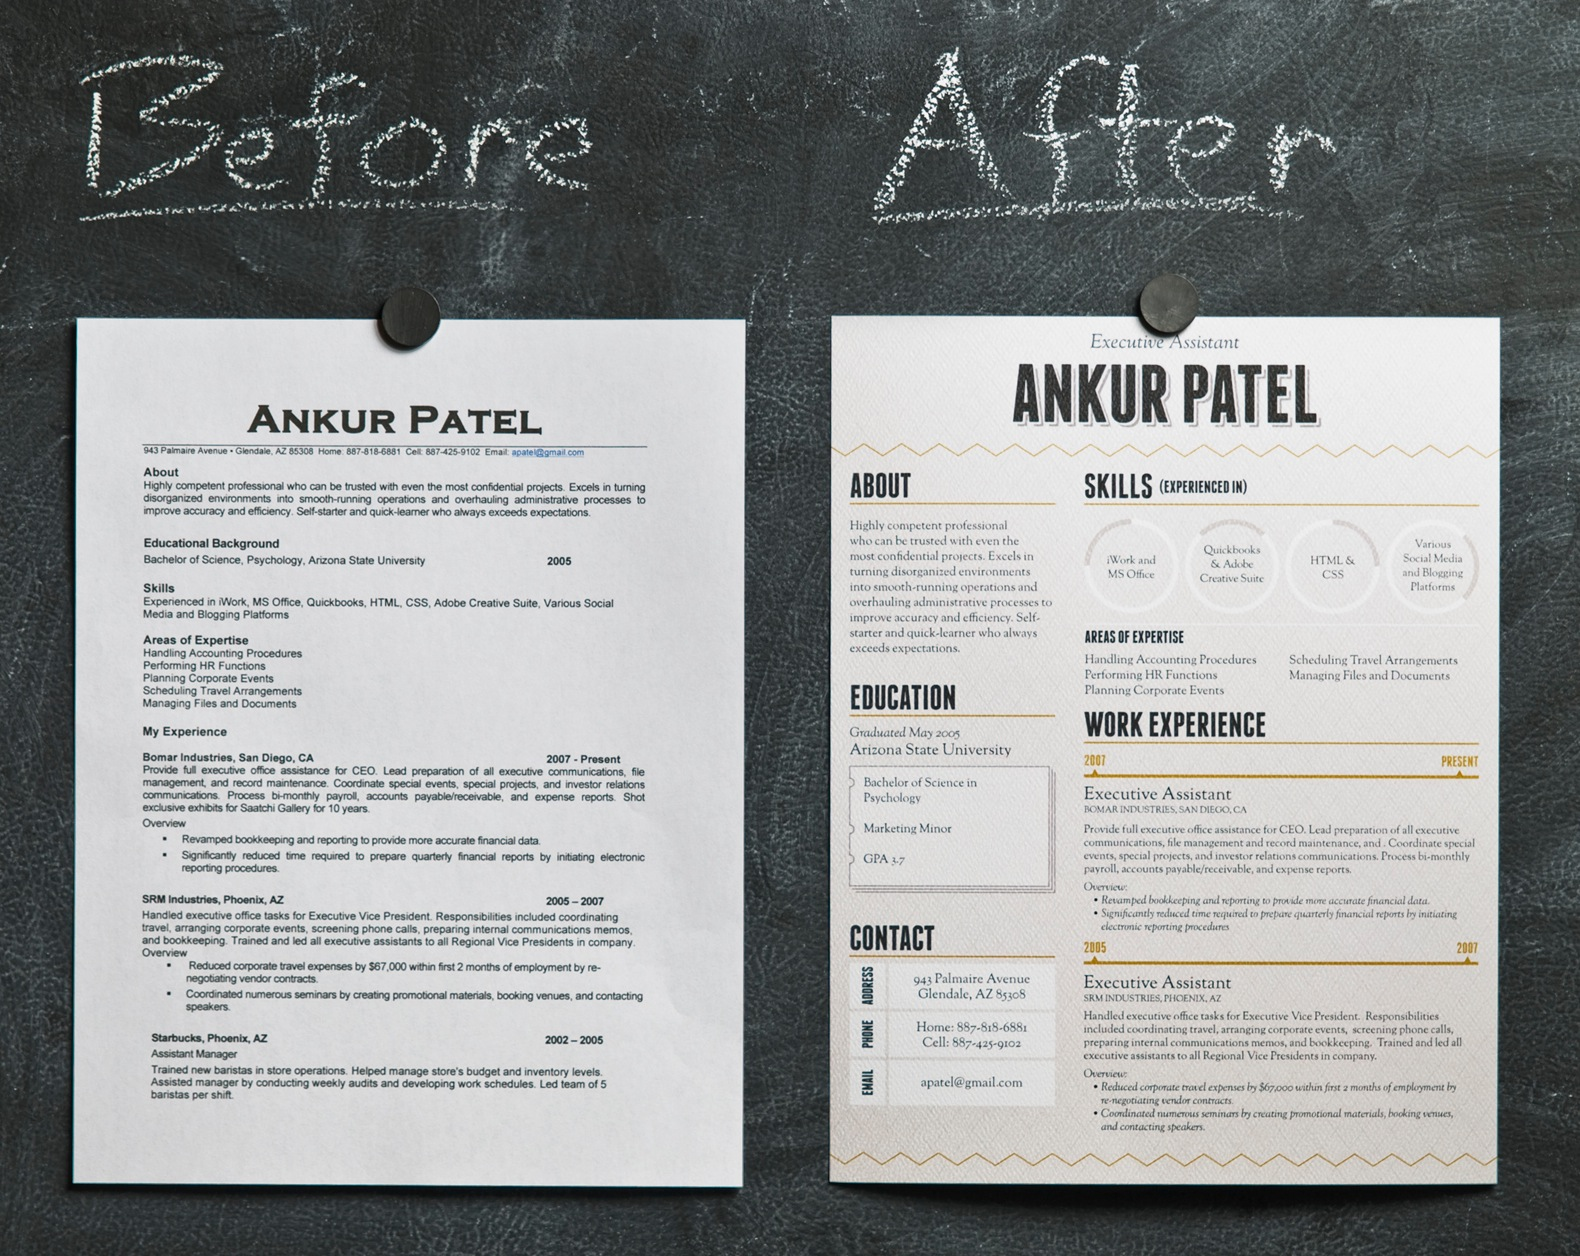 before-and-after-resume-examples